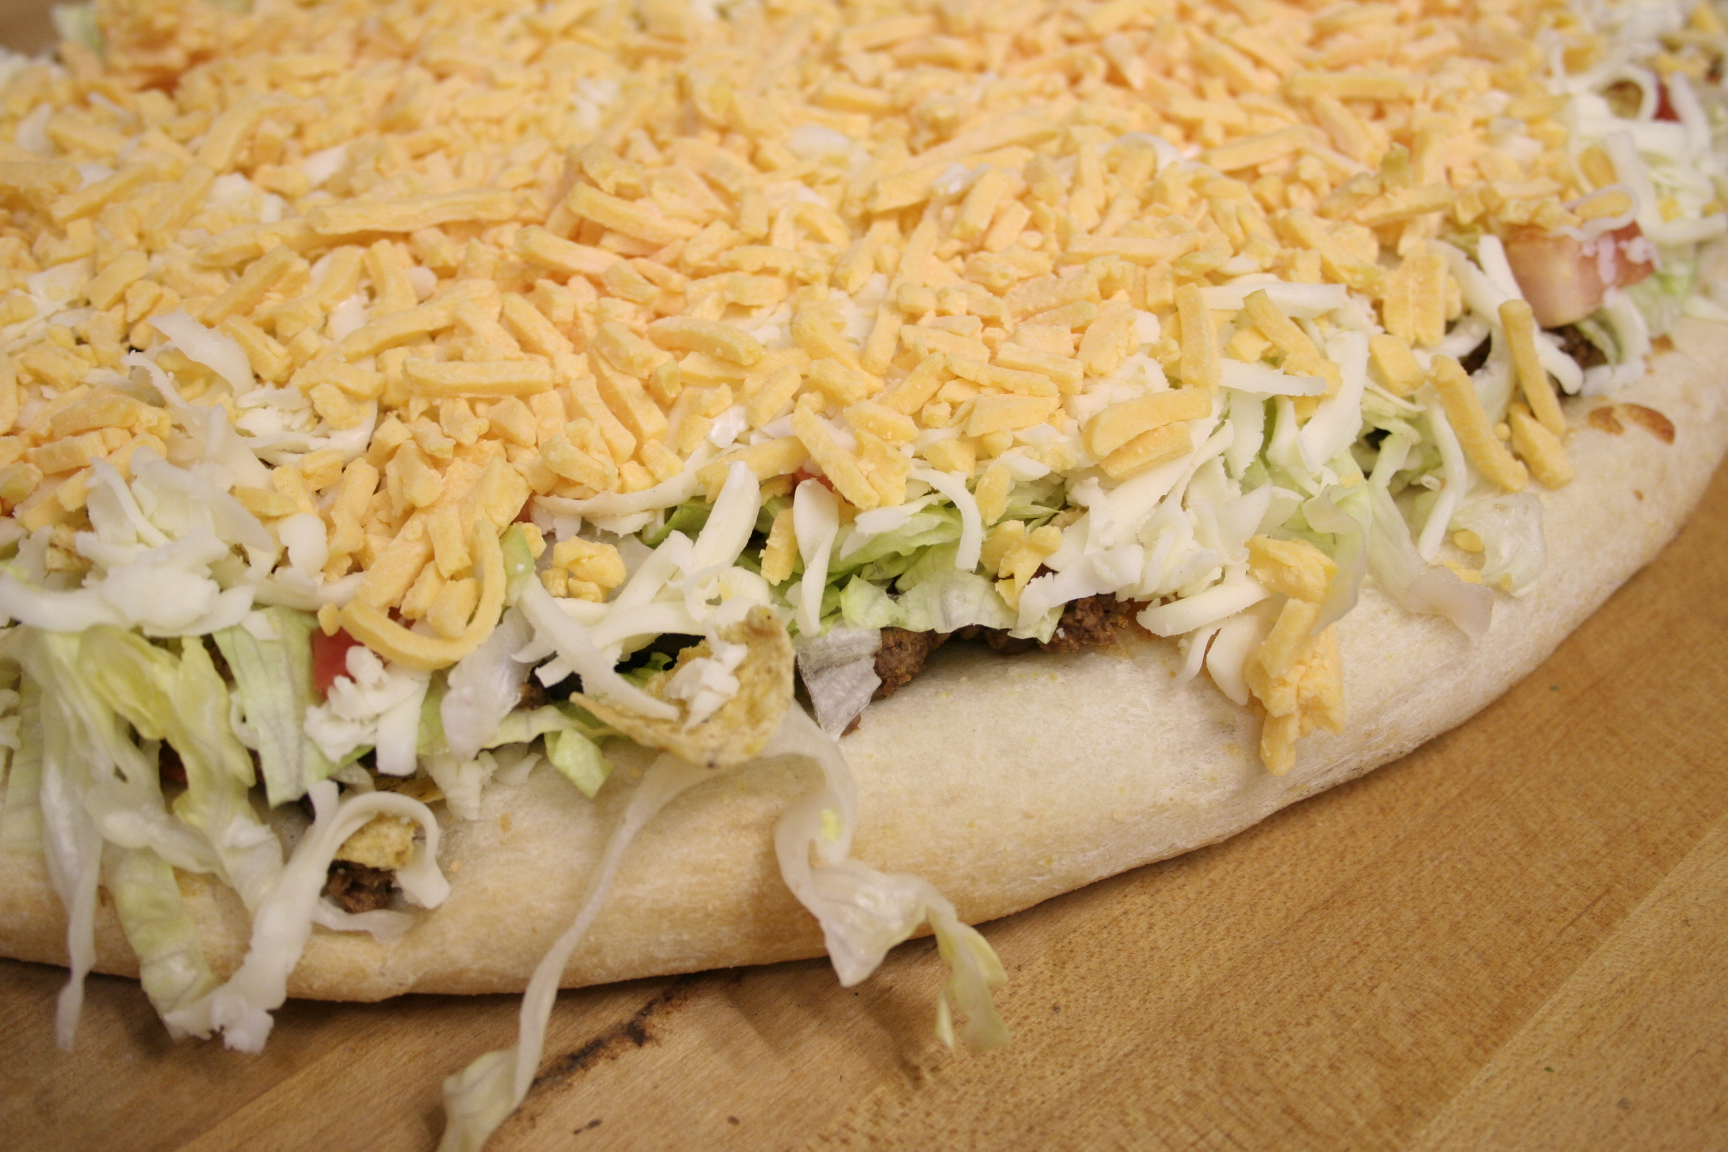 Pizza with lettuce and shredded cheddar cheese on wooden table